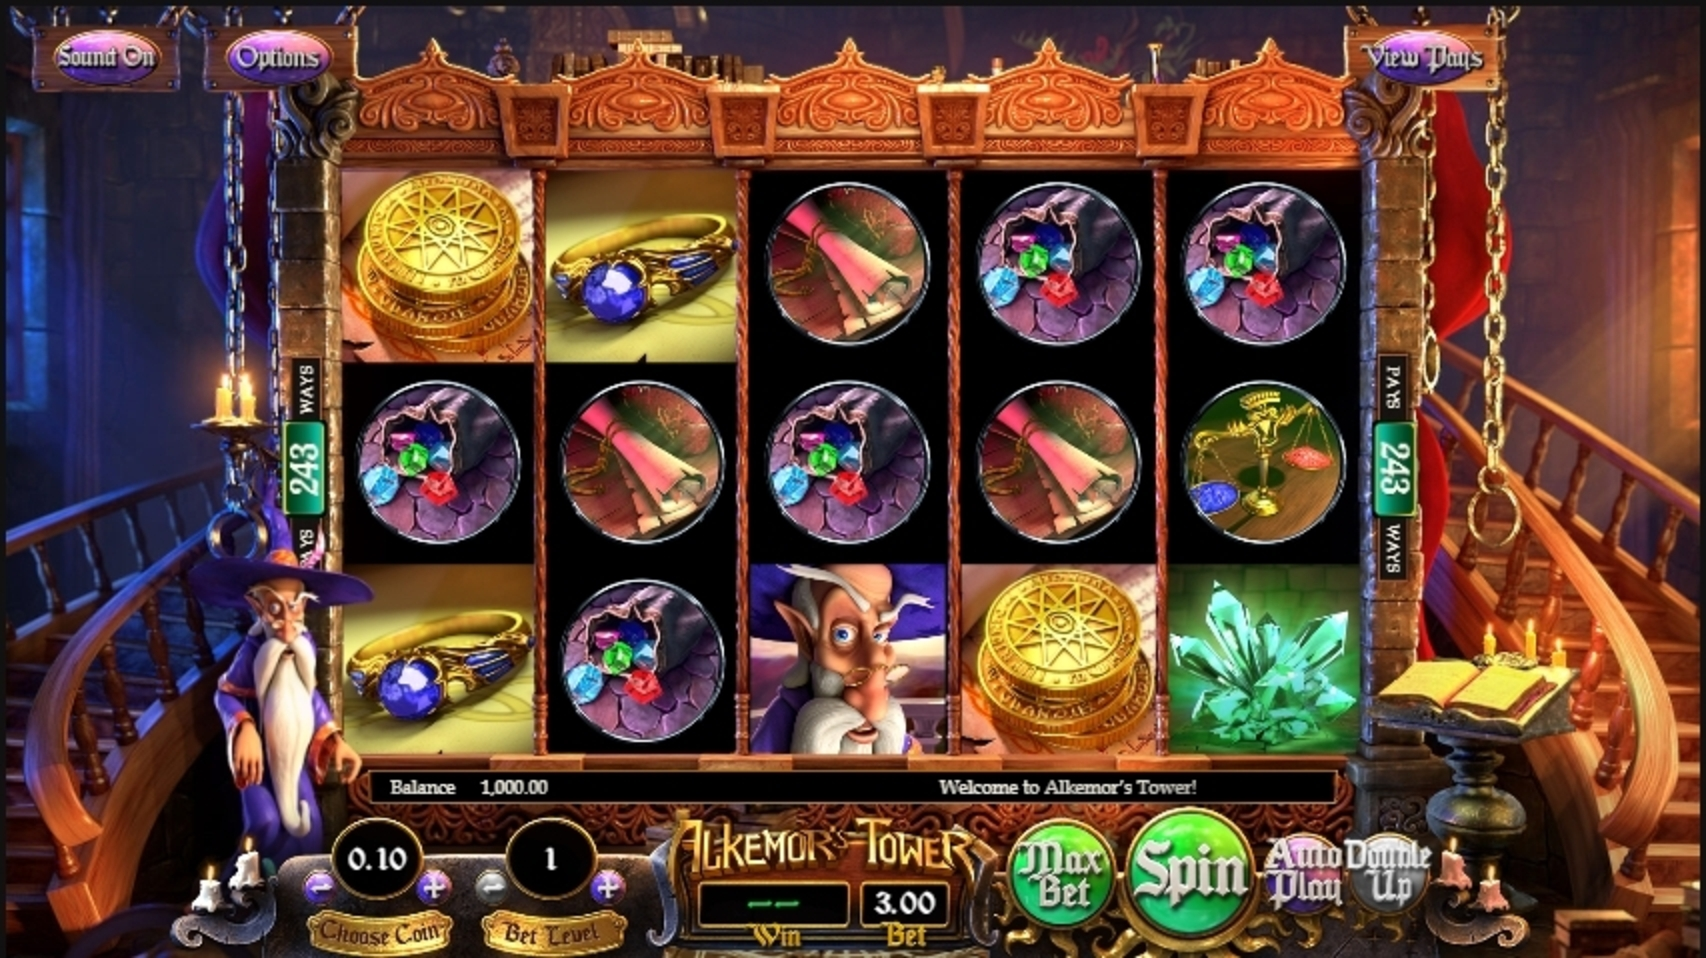 Reels in Alkemors Tower Slot Game by Betsoft